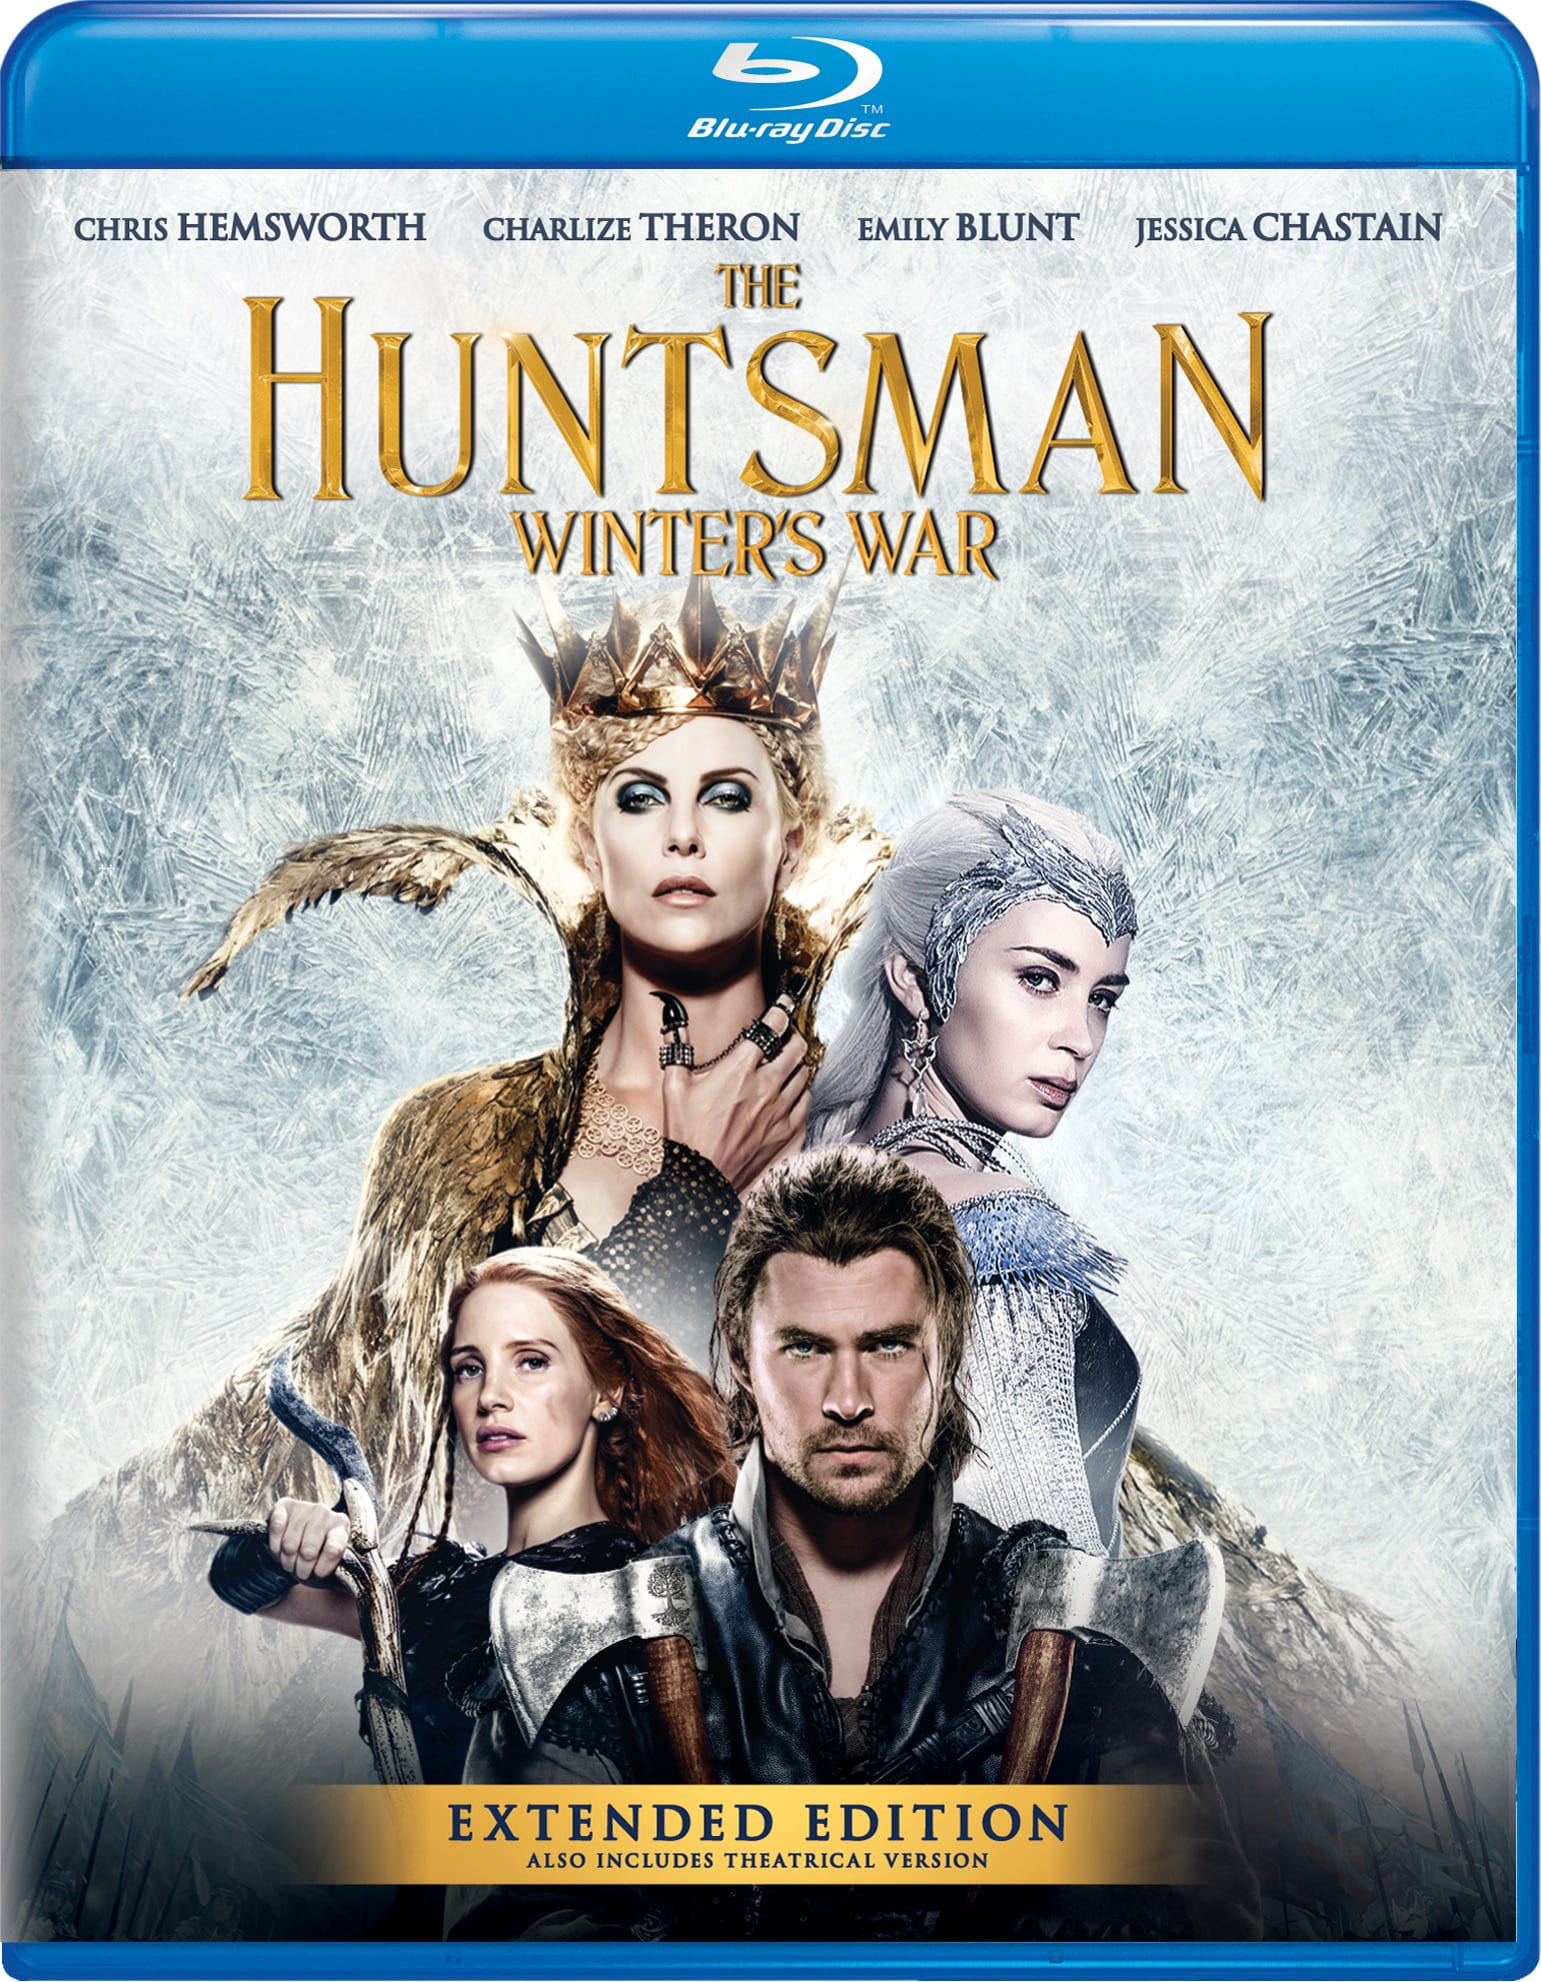 The Huntsman - Winter's War [Blu-ray]